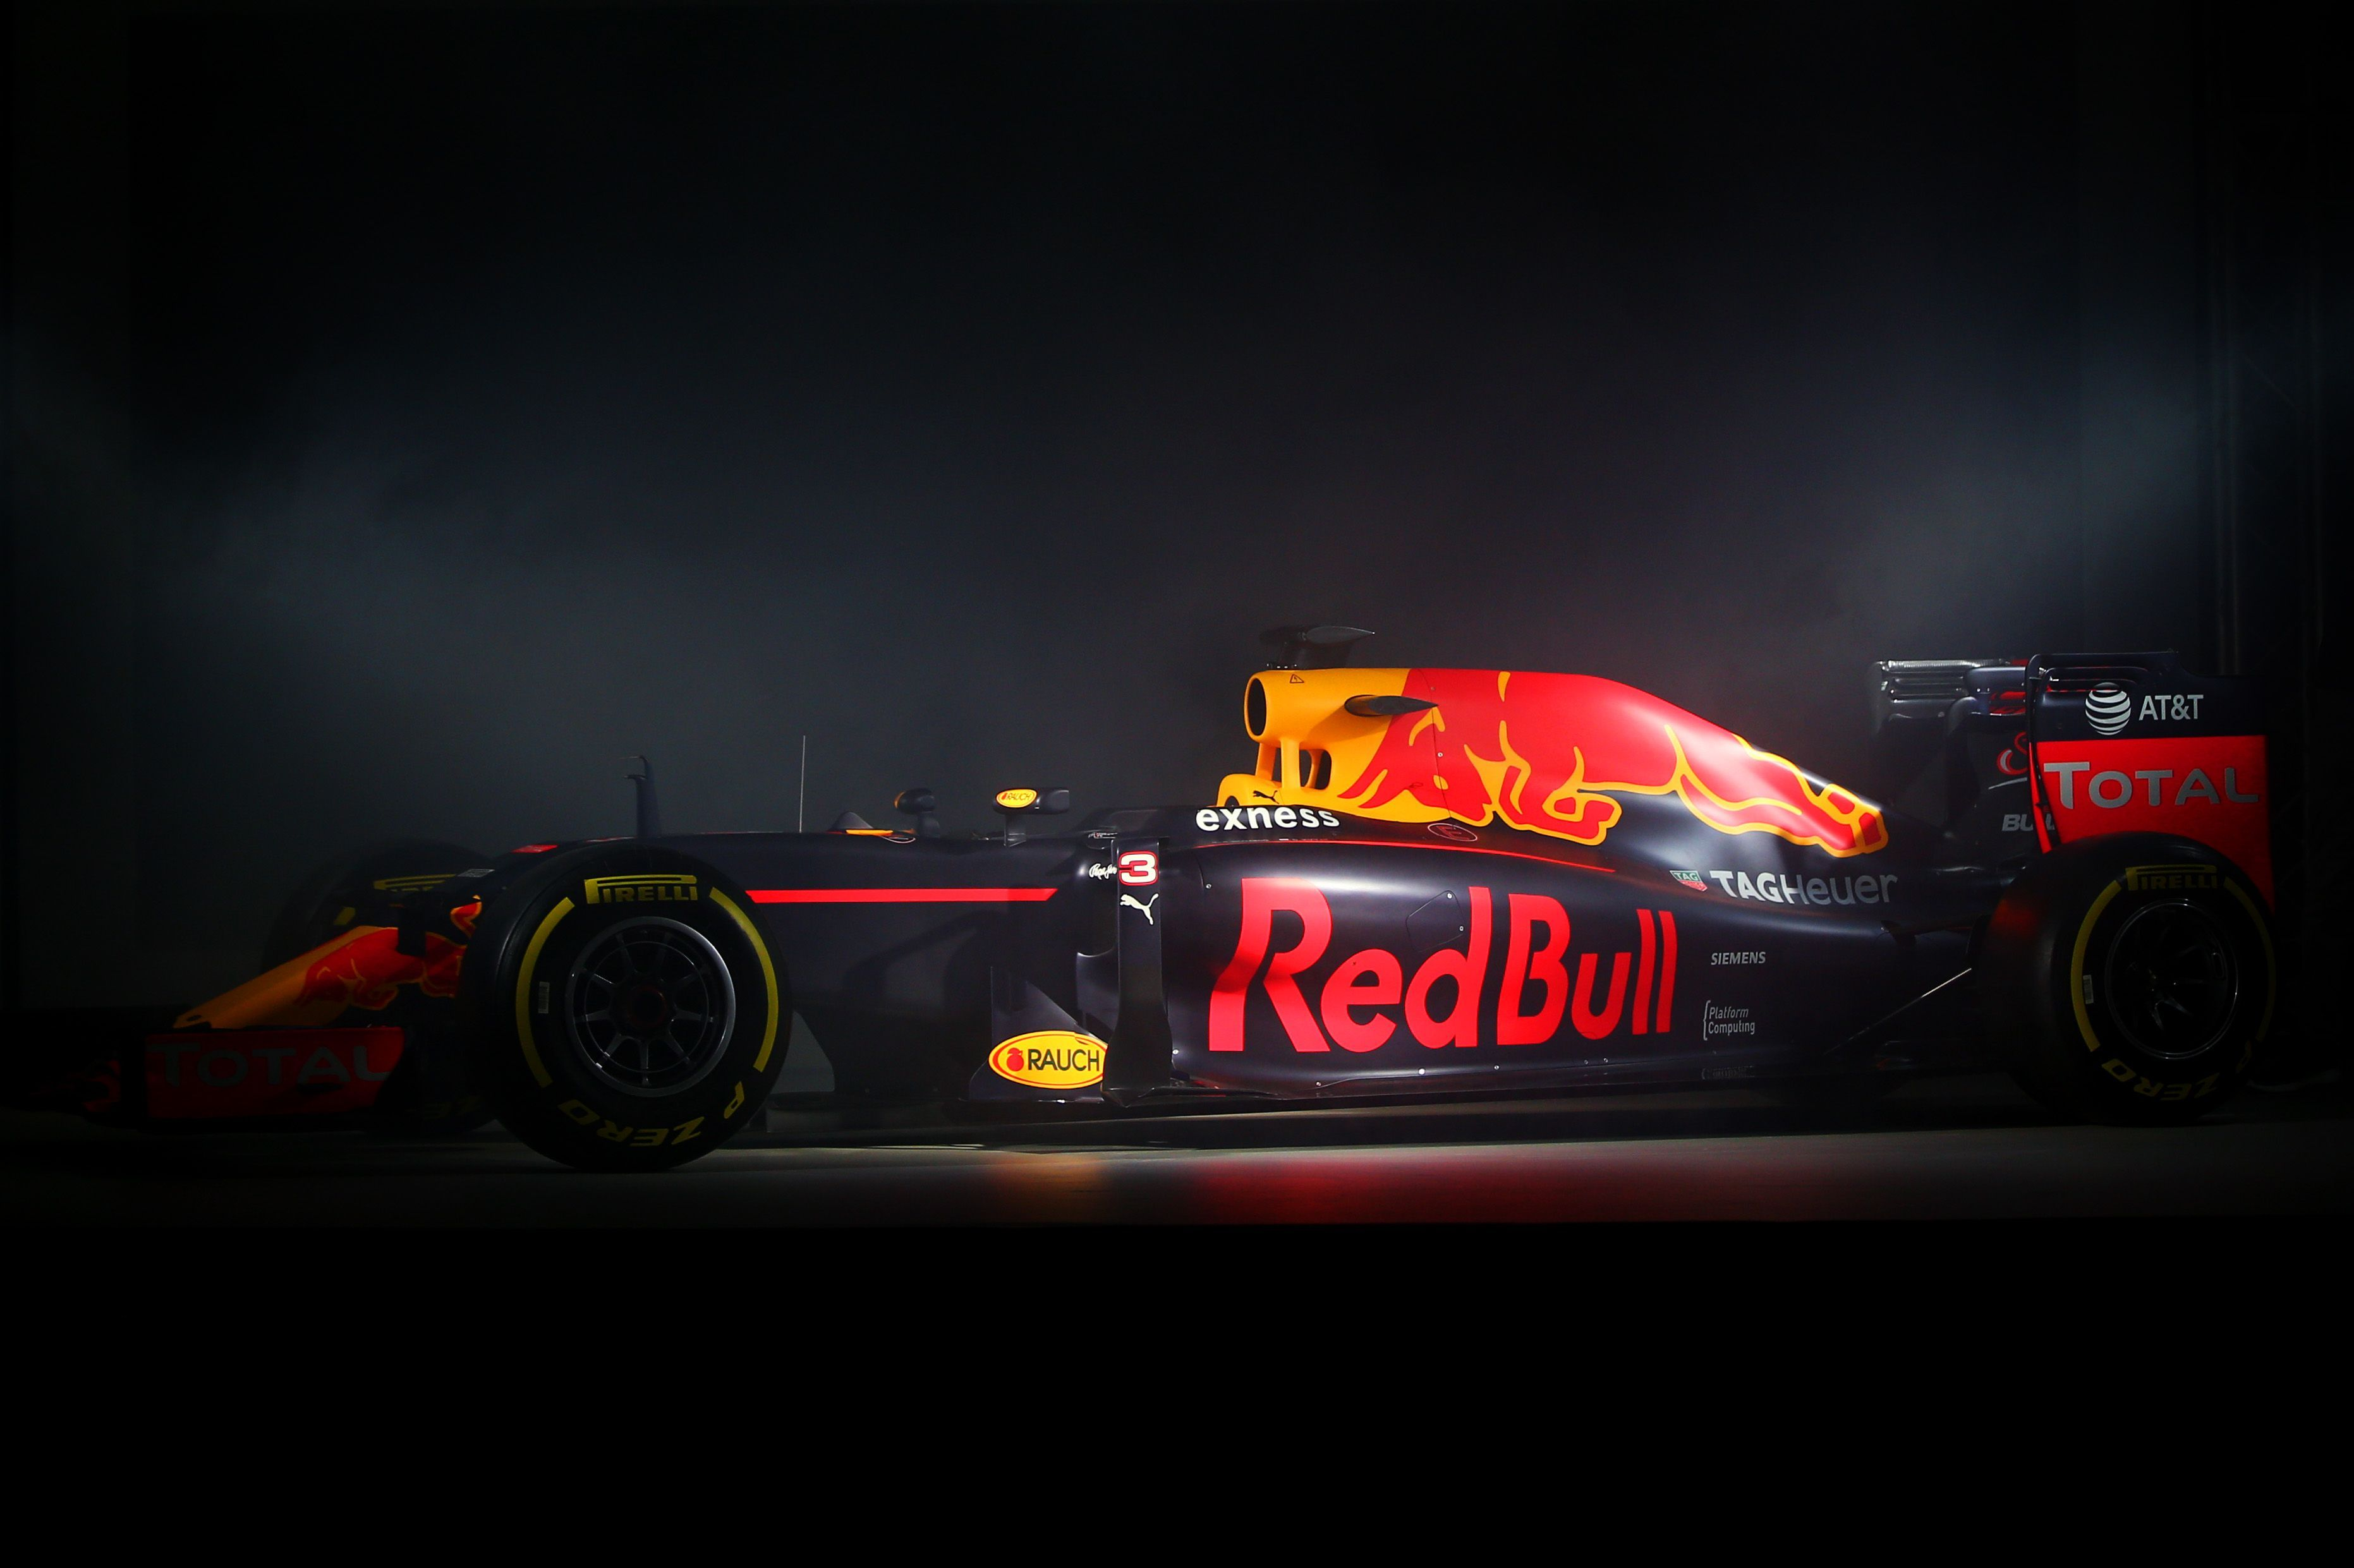 F1 Red Bull Wallpapers Top Free F1 Red Bull Backgrounds Wallpaperaccess